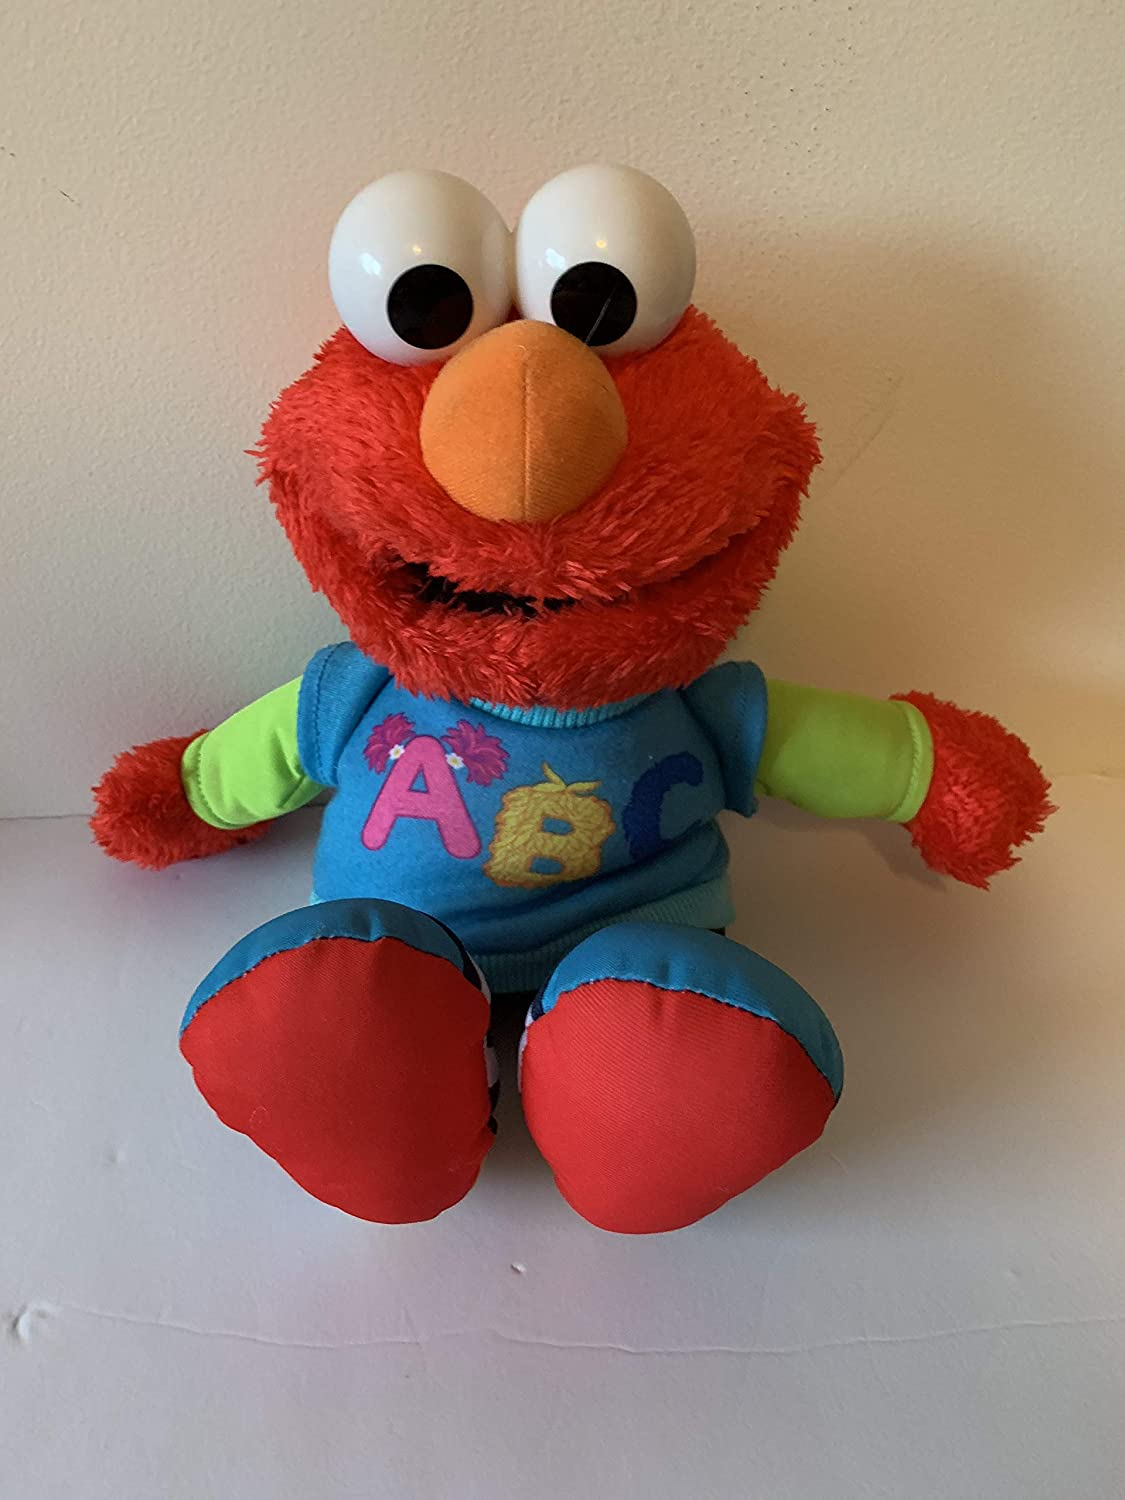 washable weighted buddy WEIGHTED PLUSH ELMO with 1 1//2 lbs